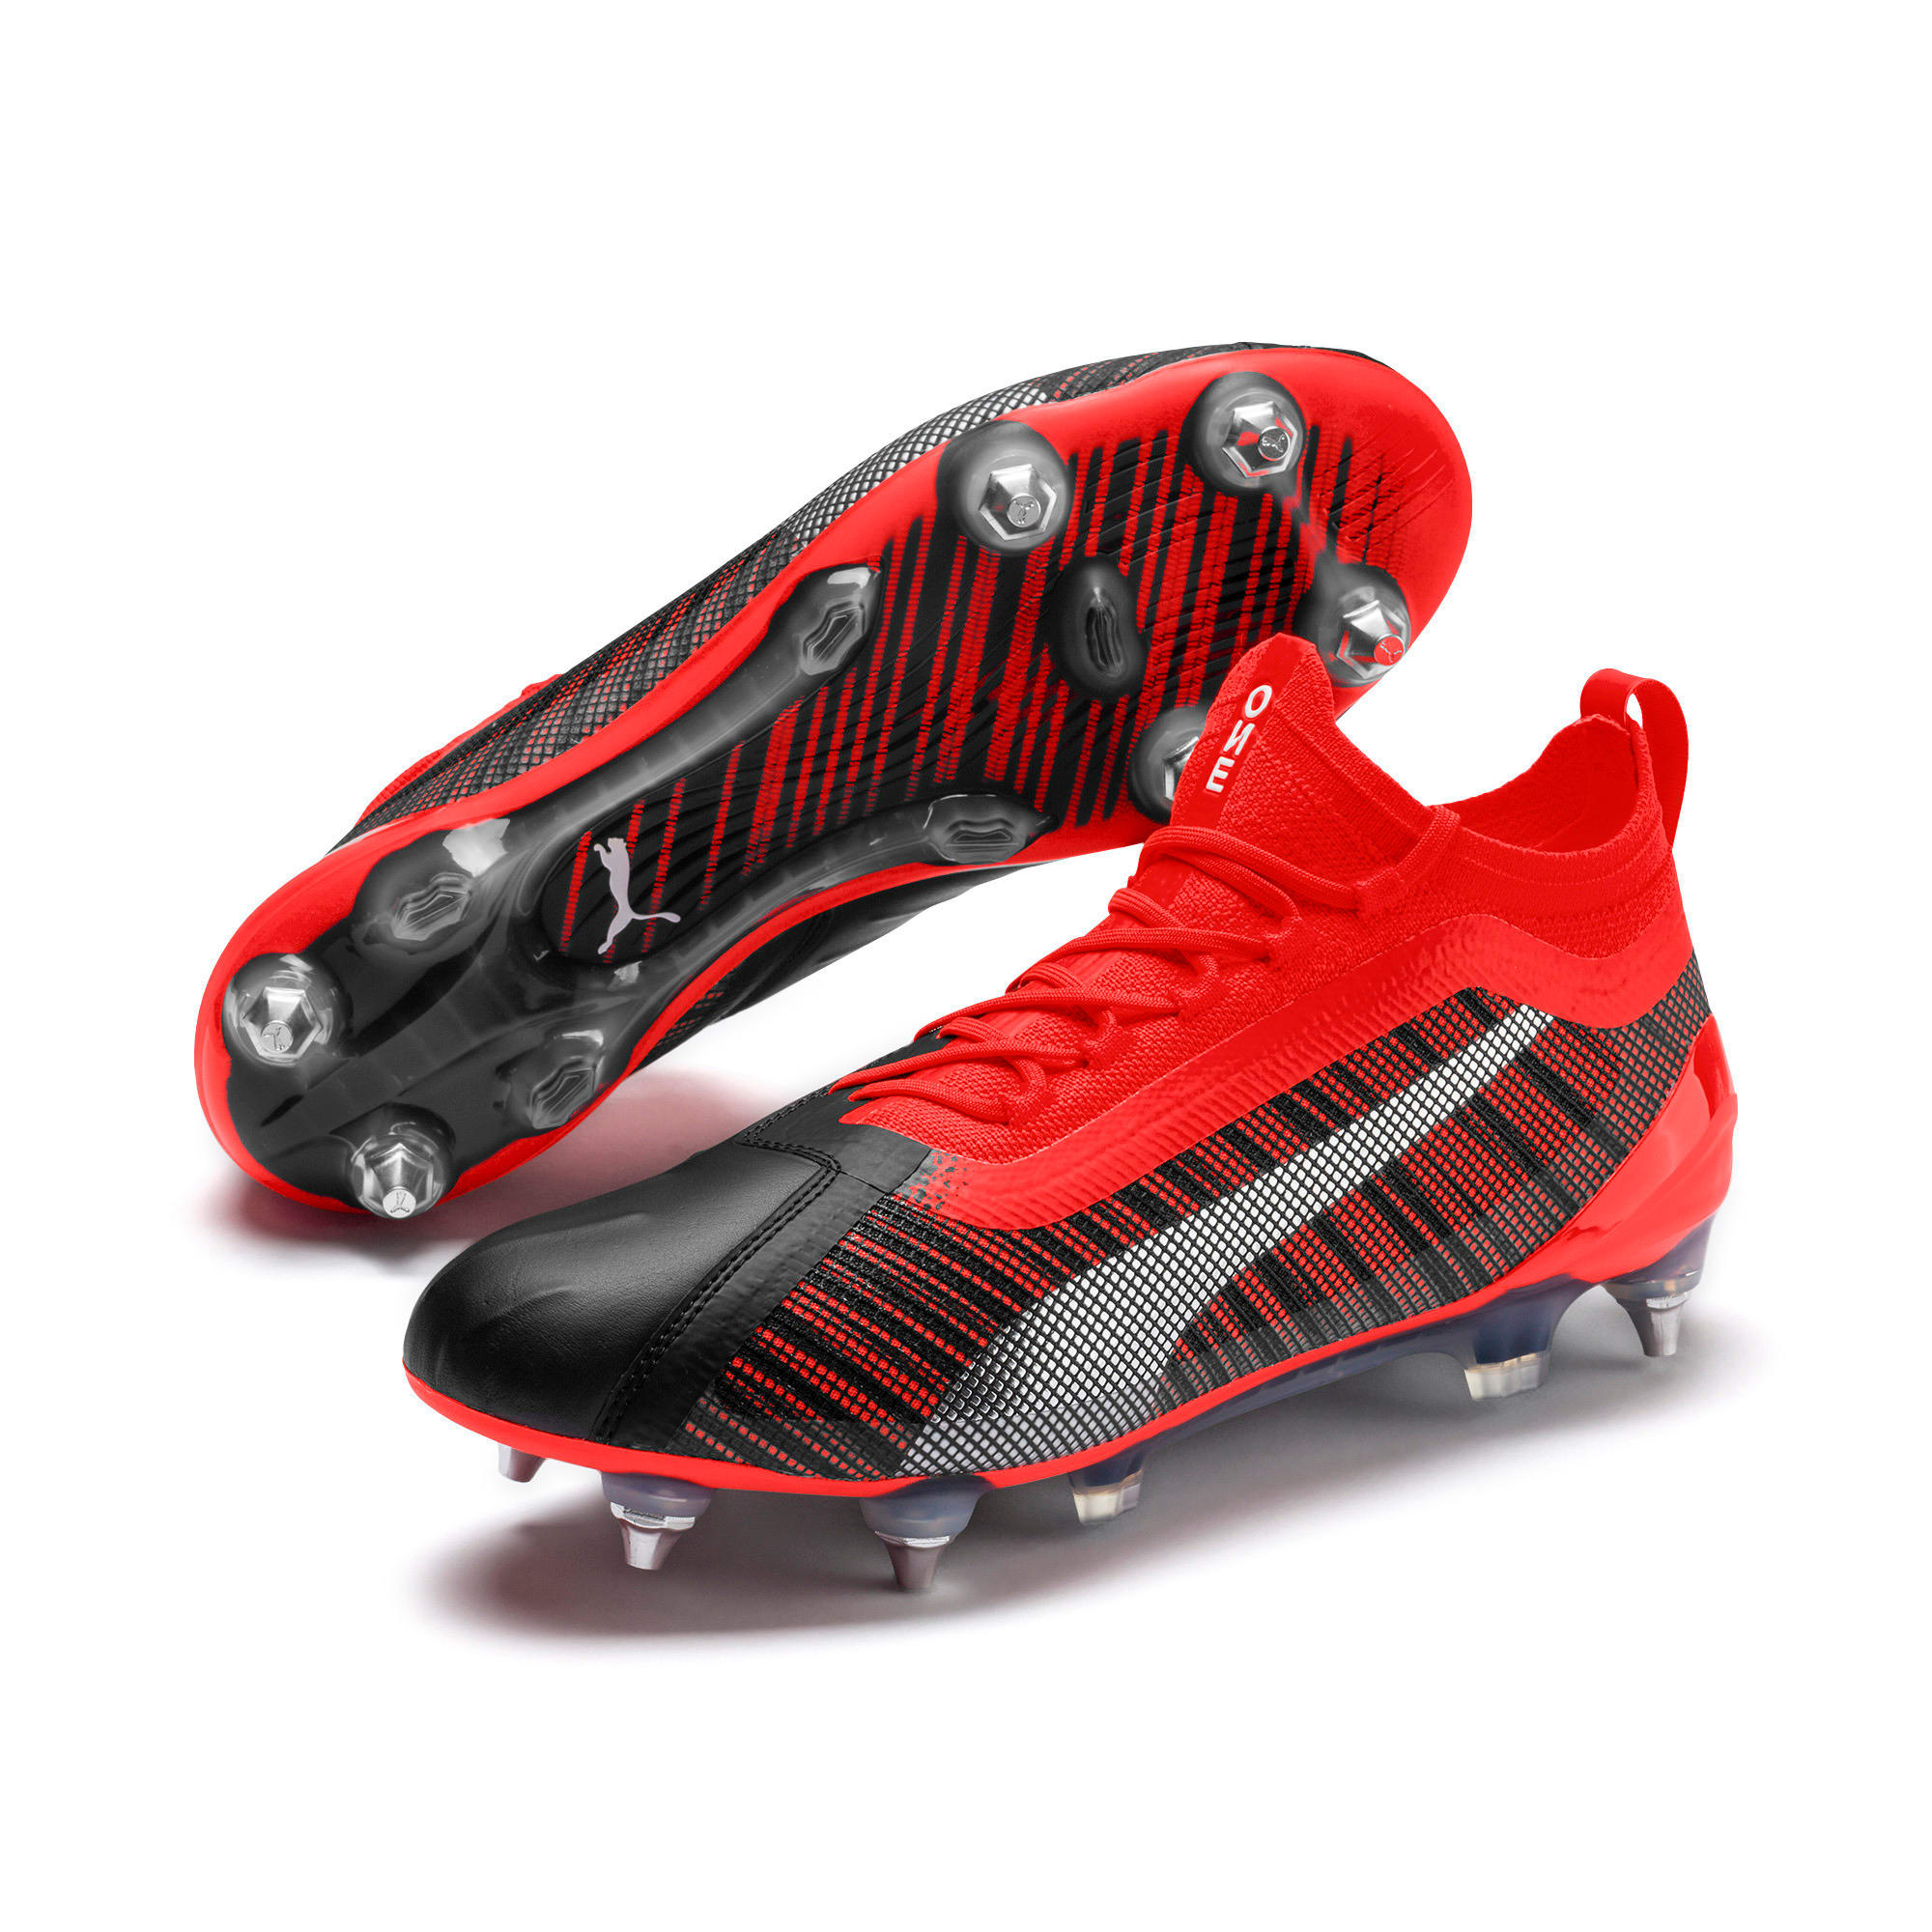 Thumbnail 3 of PUMA ONE 5.1 MxSG Football Boots, Black-Nrgy Red-Aged Silver, medium